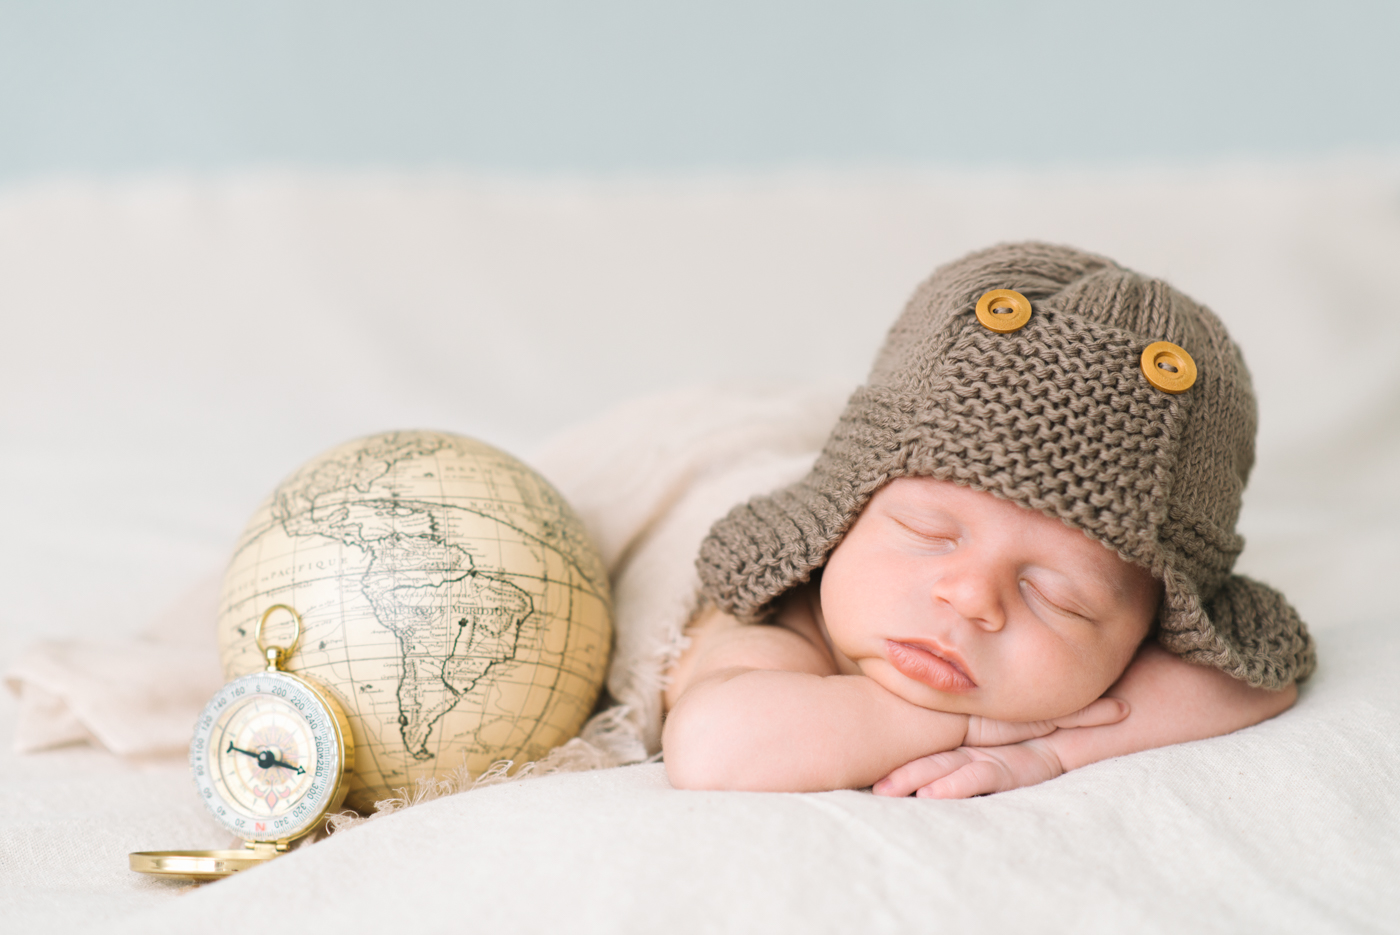 newborn-photographer-portland-oregon-aviator-knit-hat-brown-cream-globe-compass-sleeping-baby-boy-shelley-marie-photo